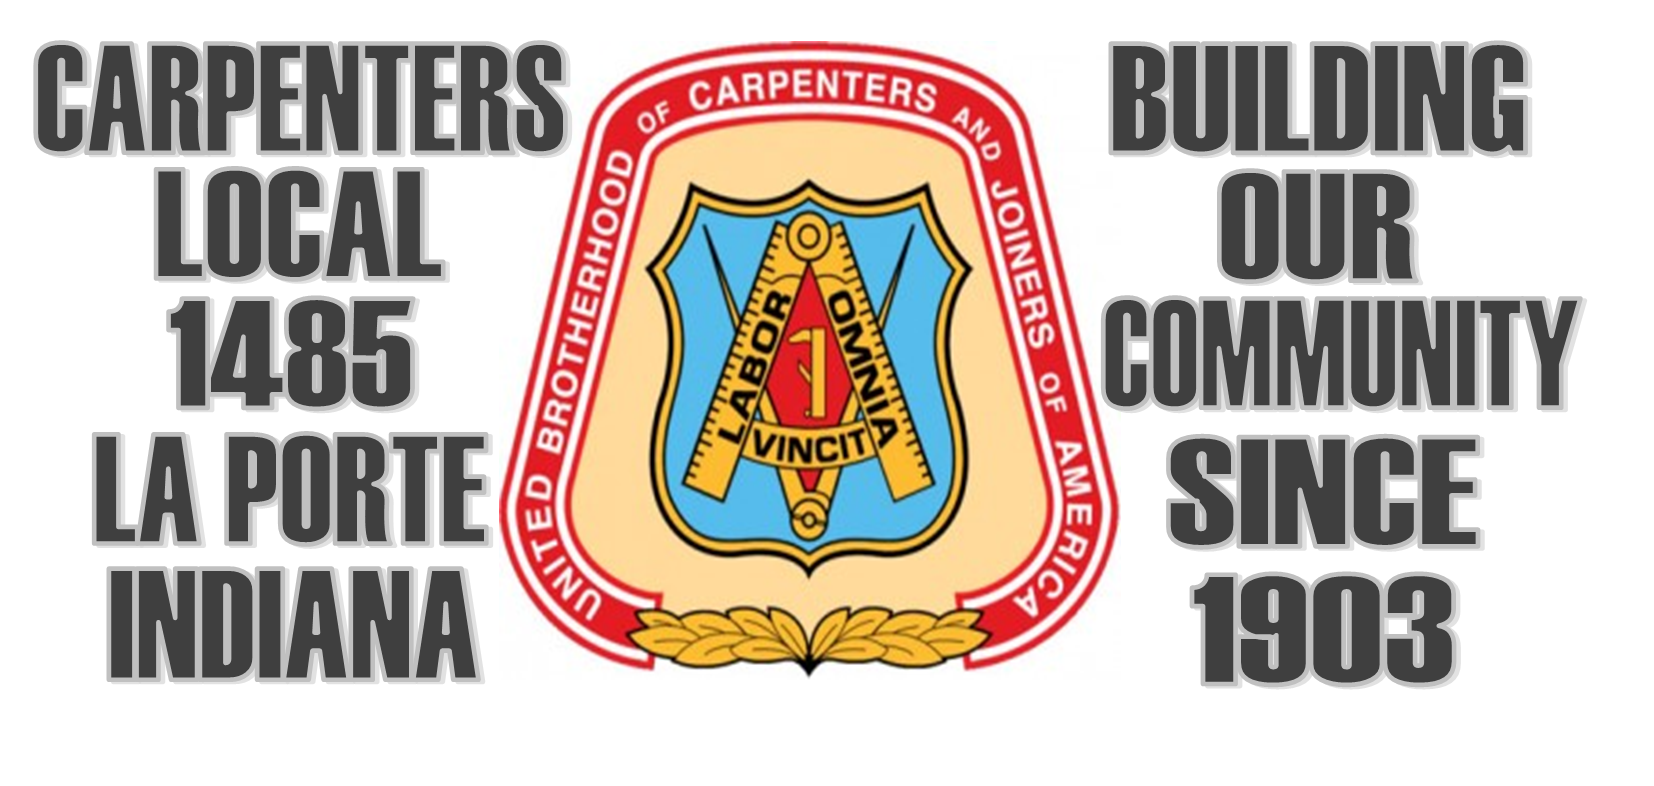 United Brotherhood of Carpenters & Joiners Local 1485